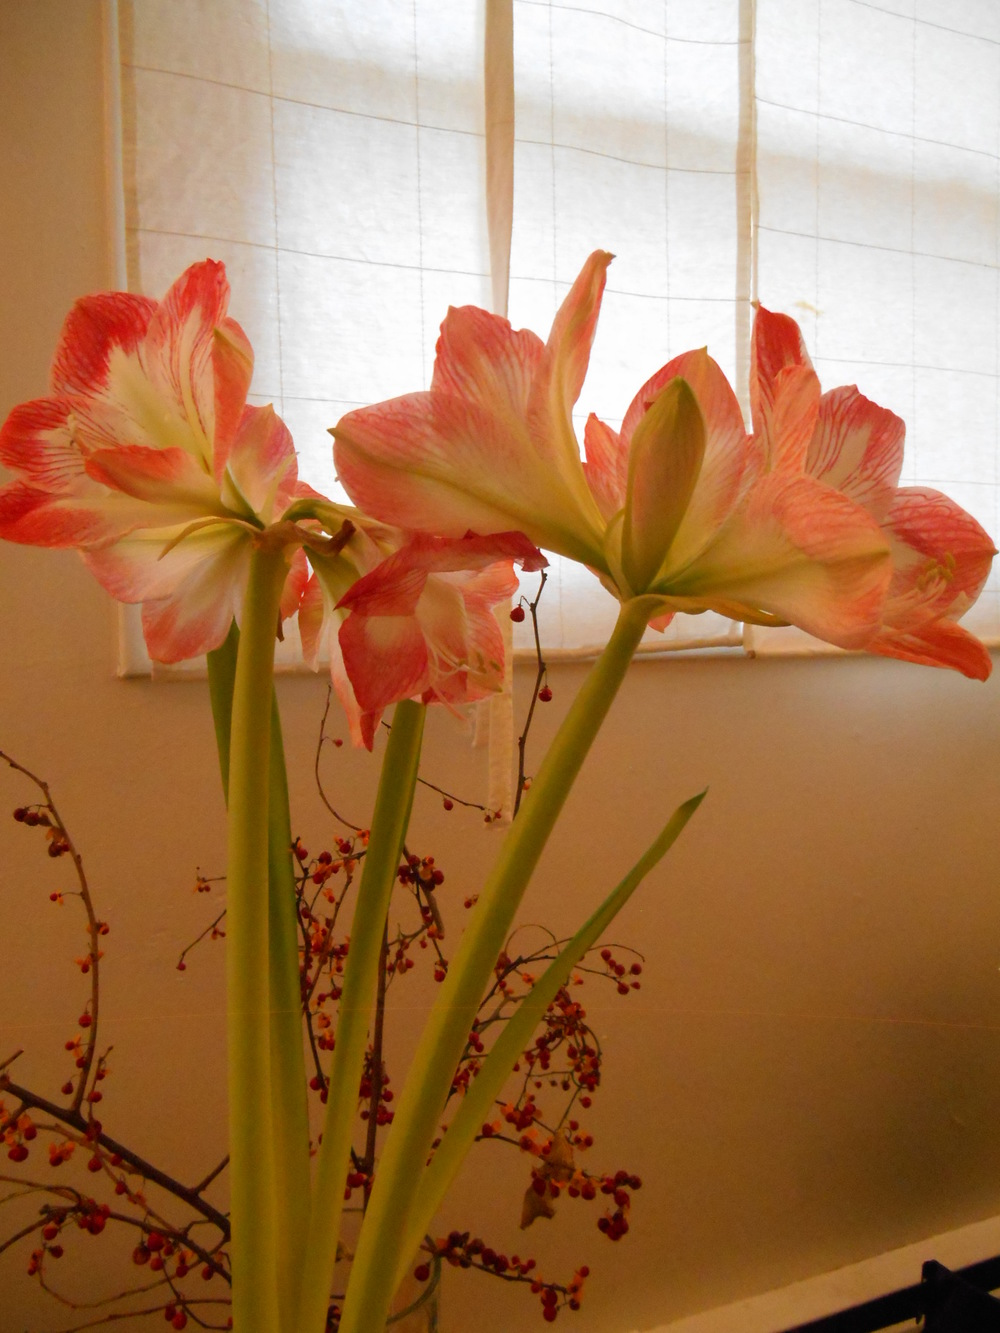 Amaryllis jan 2016 002.JPG